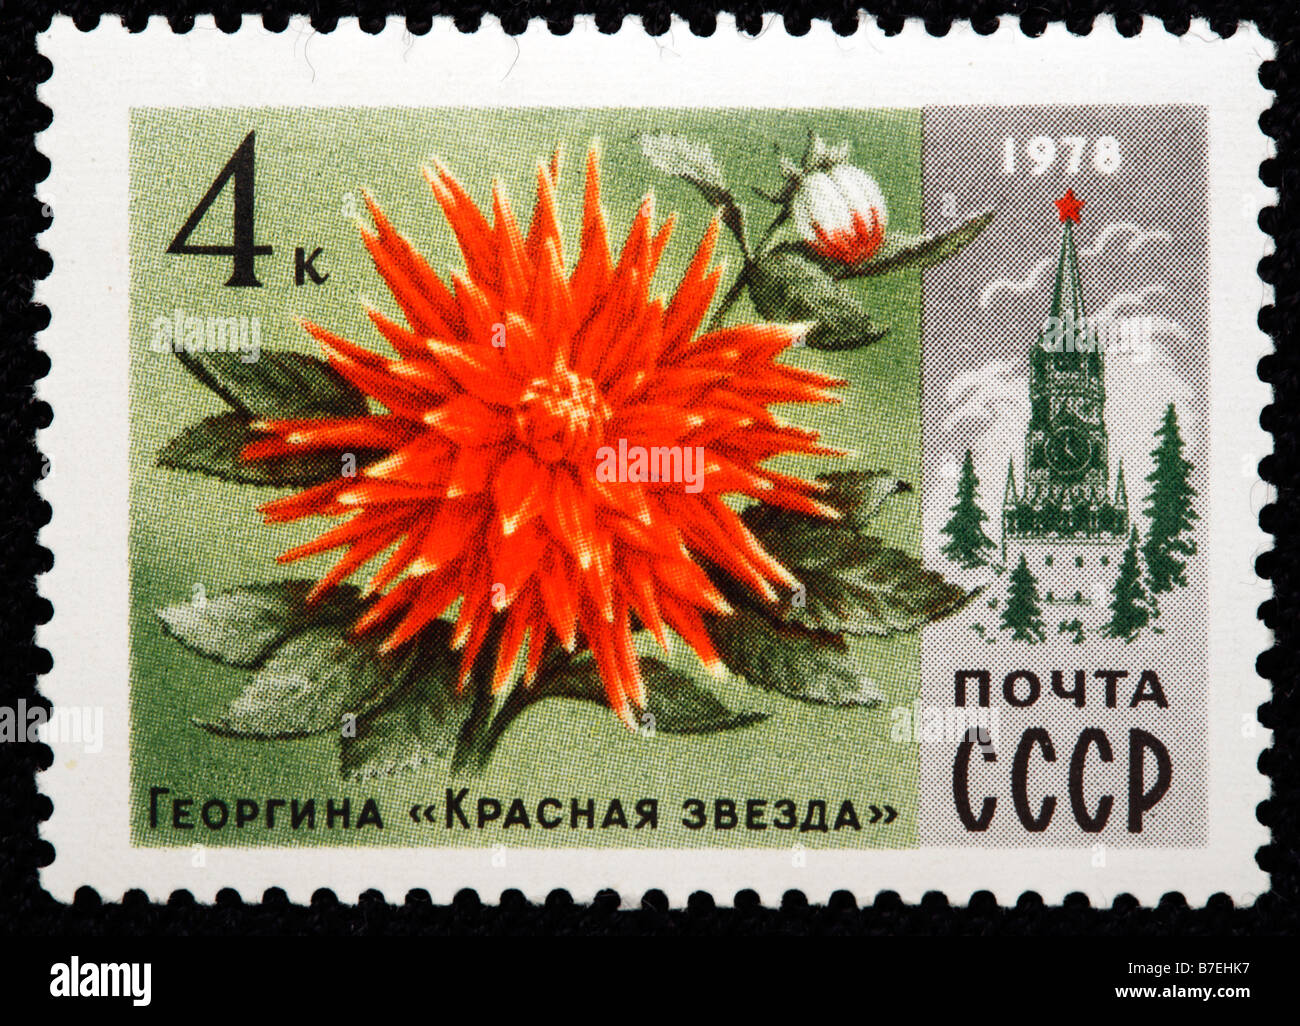 "Dahlia, georgina ""Red star"", postage stamp, USSR, Russia, 1978 Stock Photo"